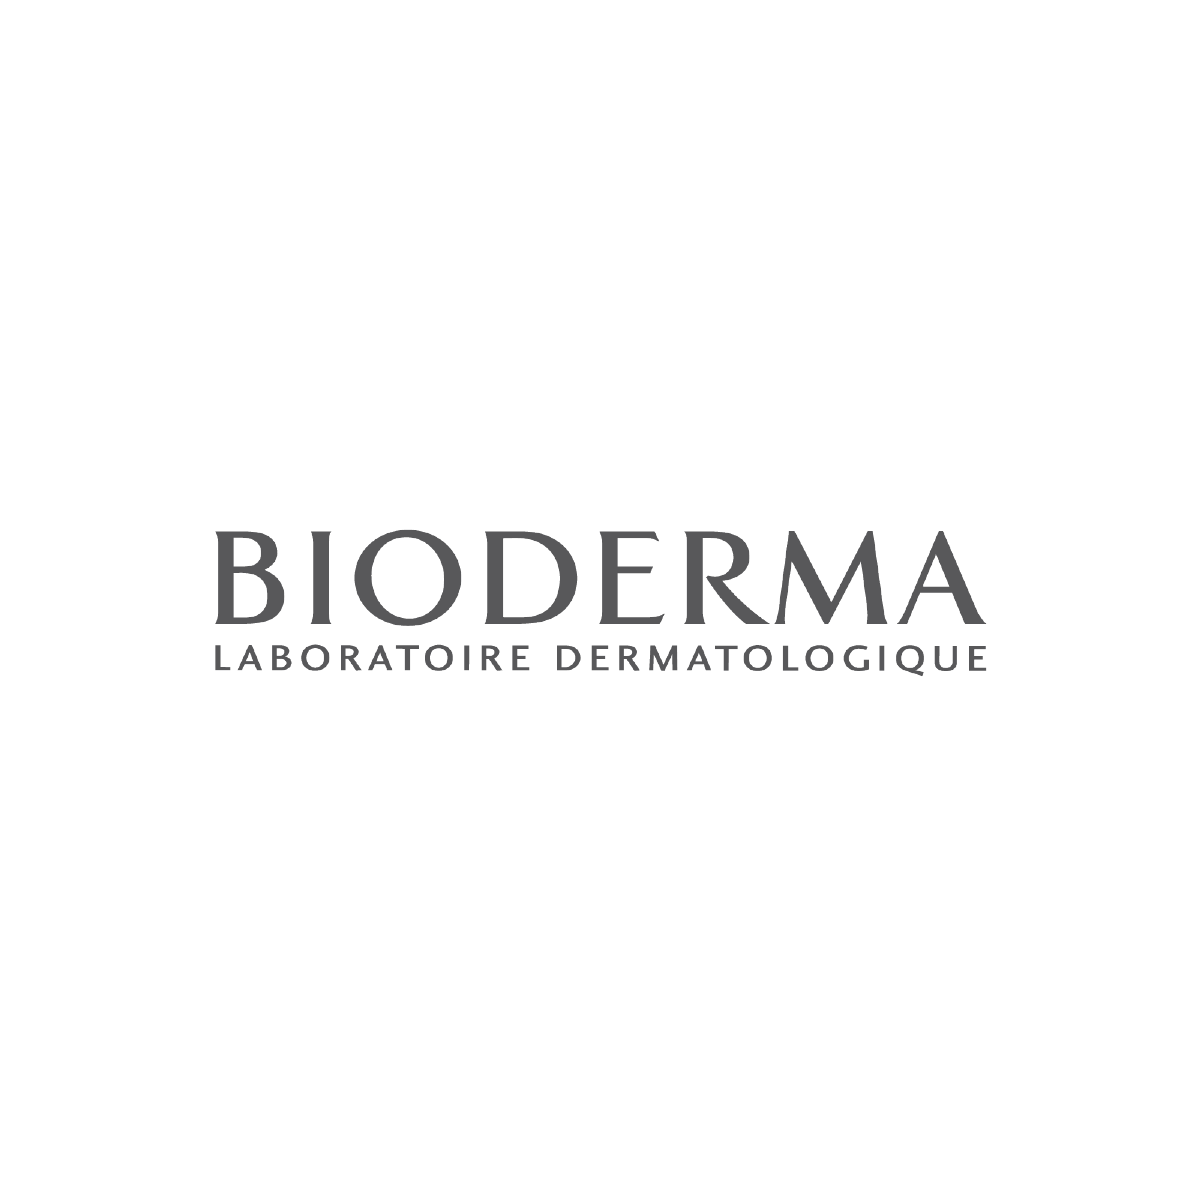 Image result for bioderma logo